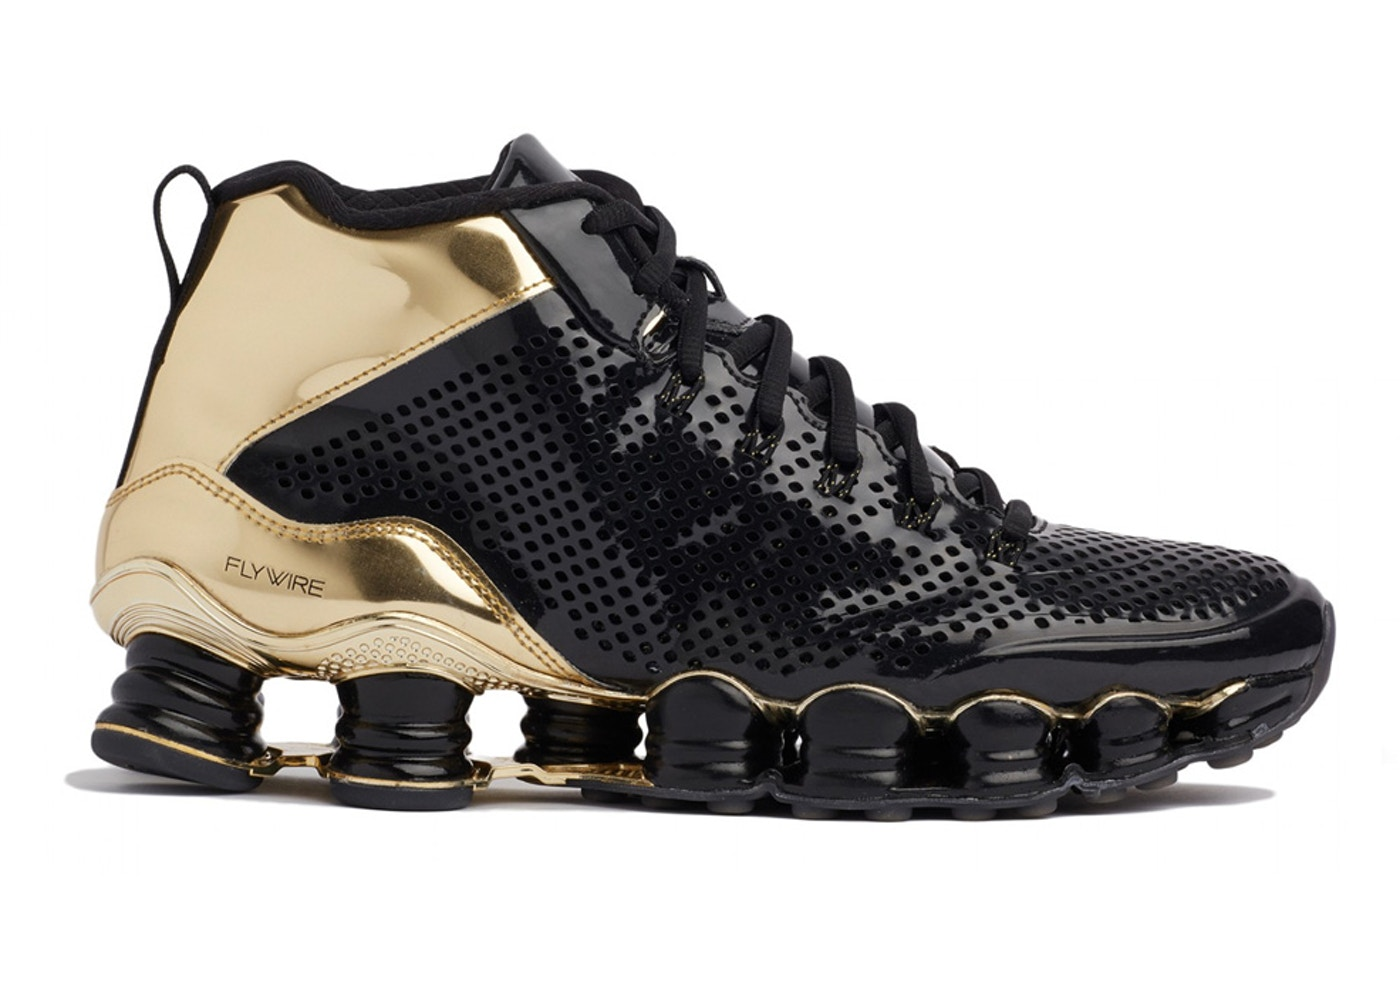 reputable site 3e685 25a36 Nike Shox TLX Mid SP Black Gold - 677737-002